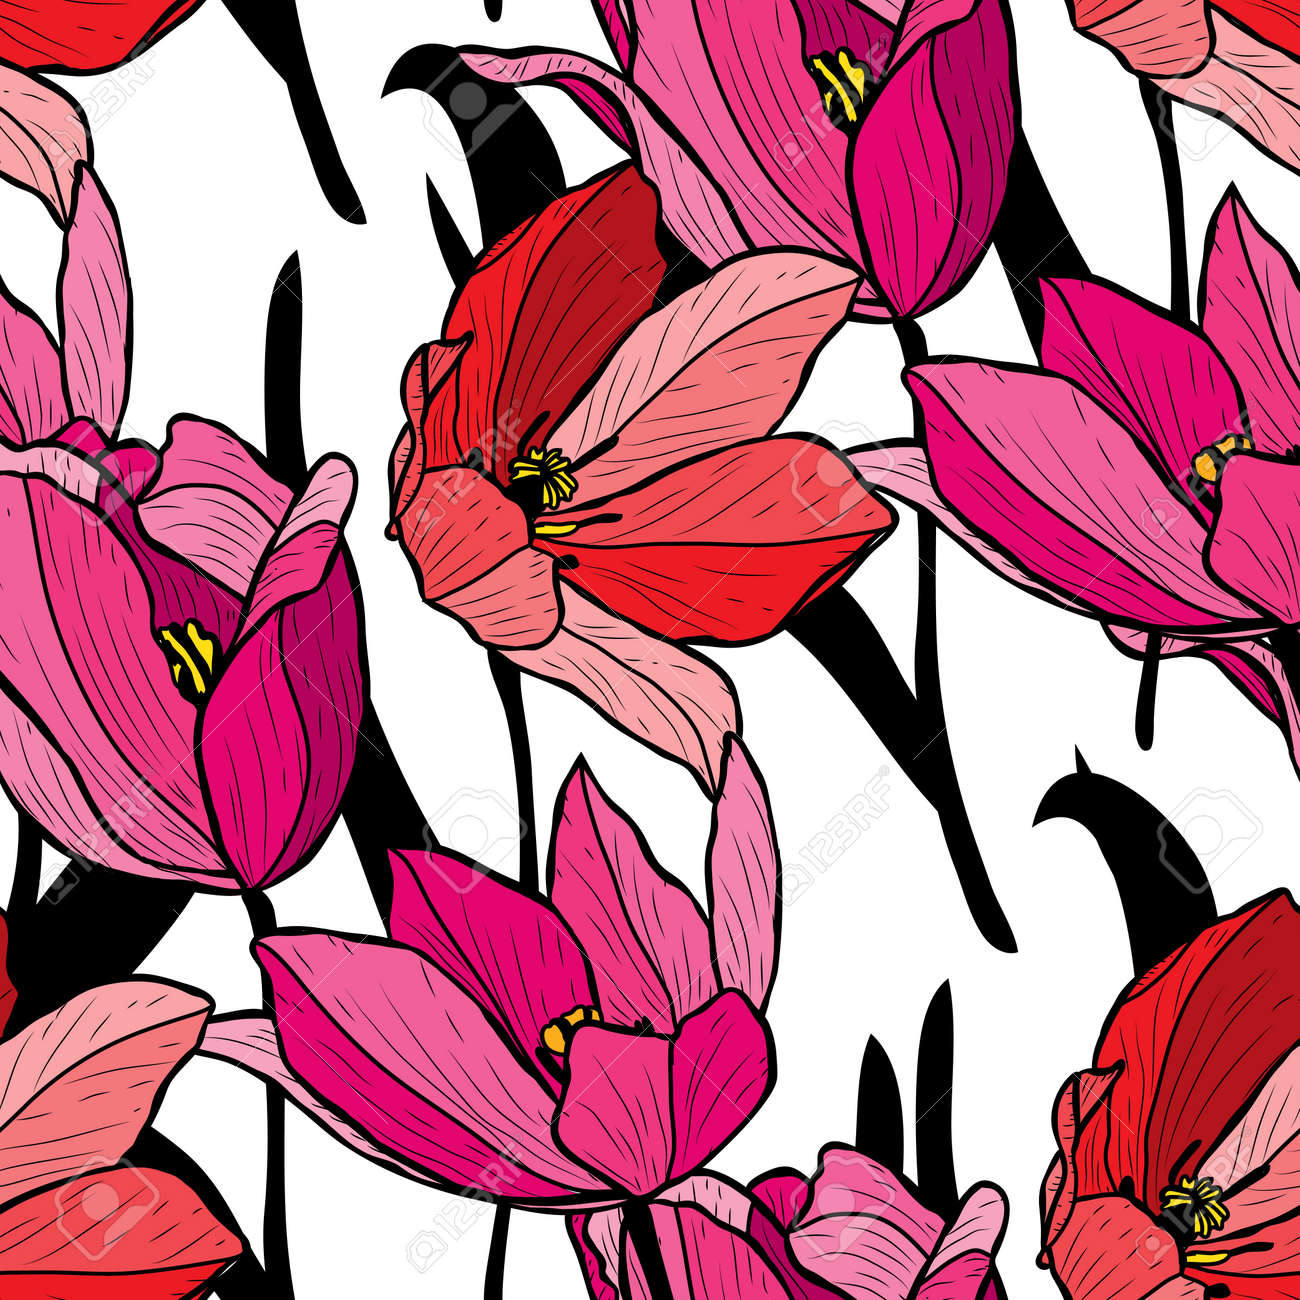 Elegant seamless pattern with tulip flowers, design elements. Floral pattern for invitations, cards, print, gift wrap, manufacturing, textile, fabric, wallpapers - 121868330